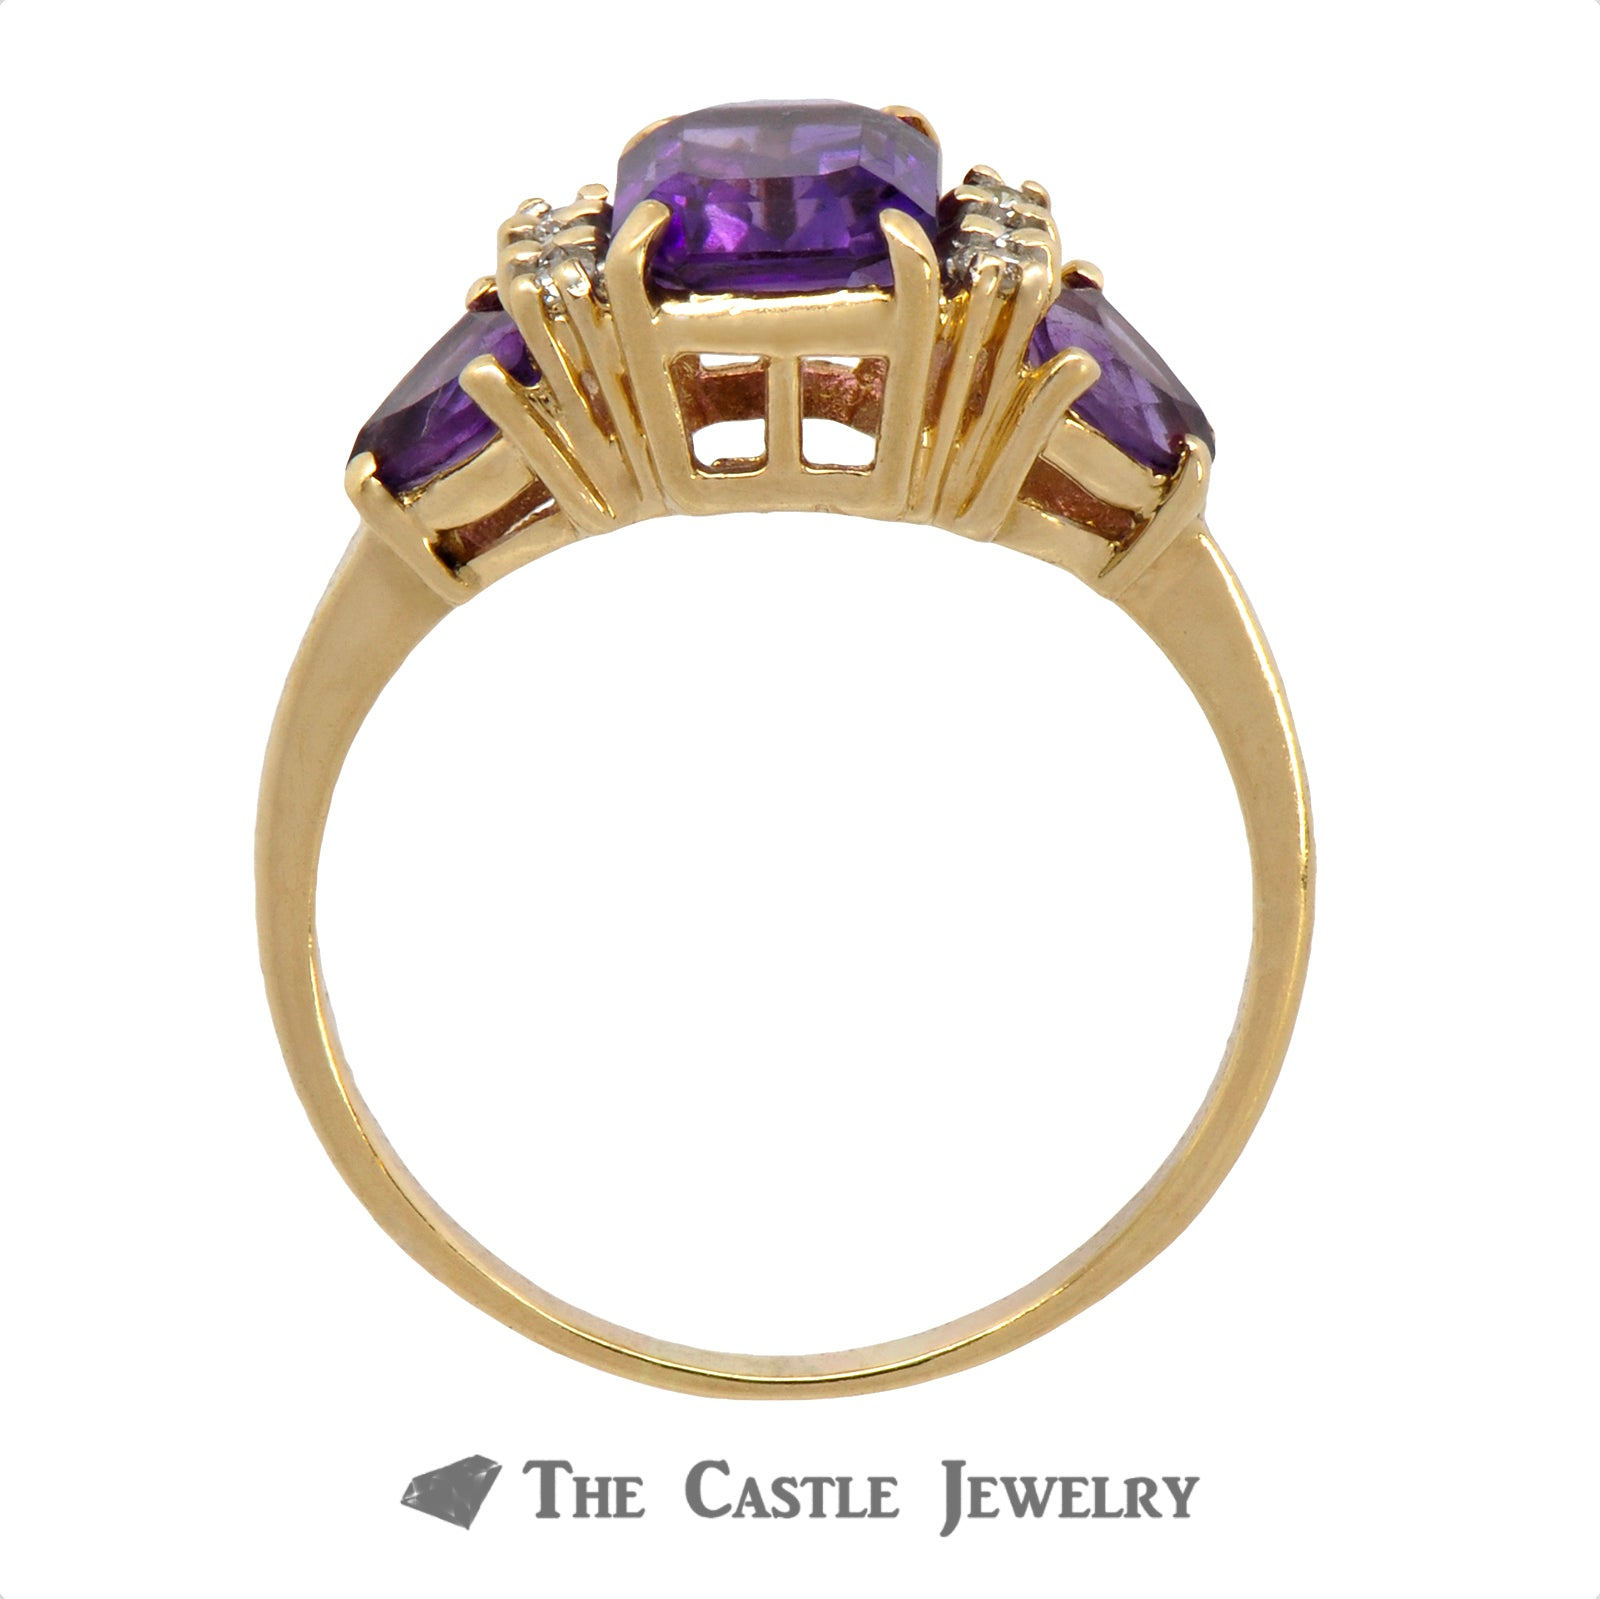 Emerald Cut Amethyst Ring with Trillion Cut Amethyst and Round Diamond Accents in 10k Yellow Gold-1